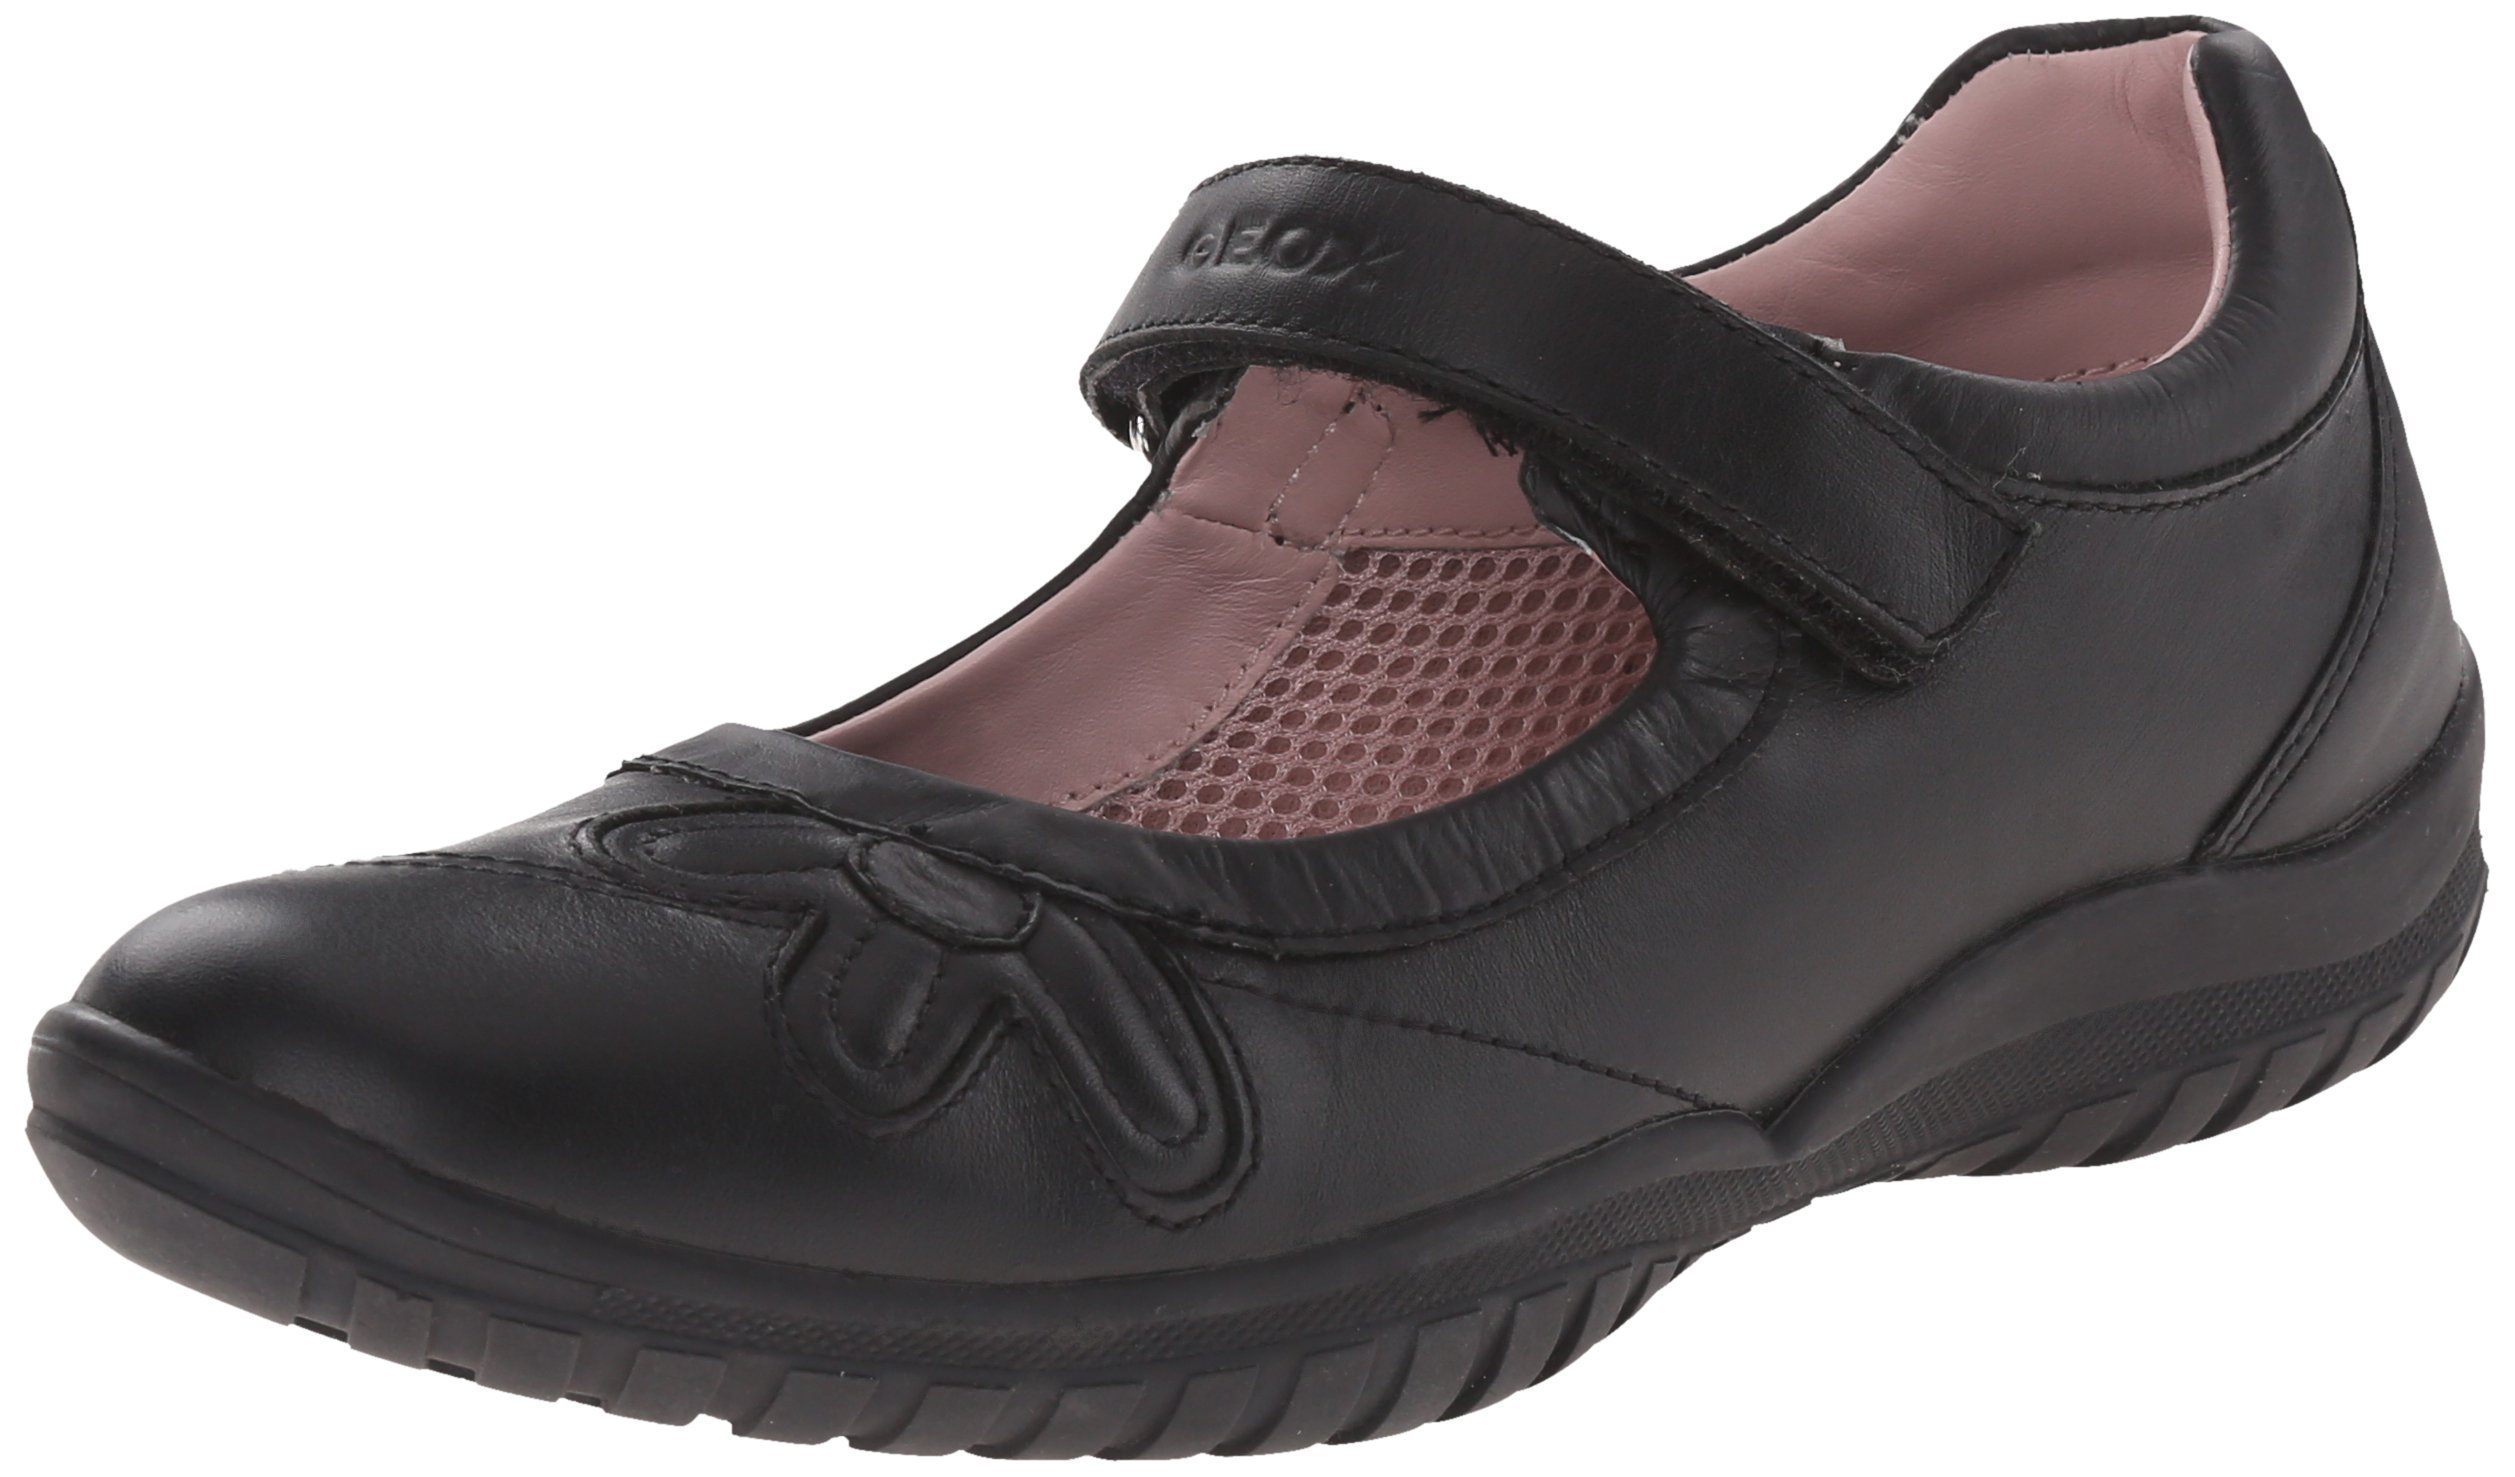 Geox CSHADOW42 Ballerina Flat (Little kid/Big Kid),Black,39 EU/6 M US BigKid